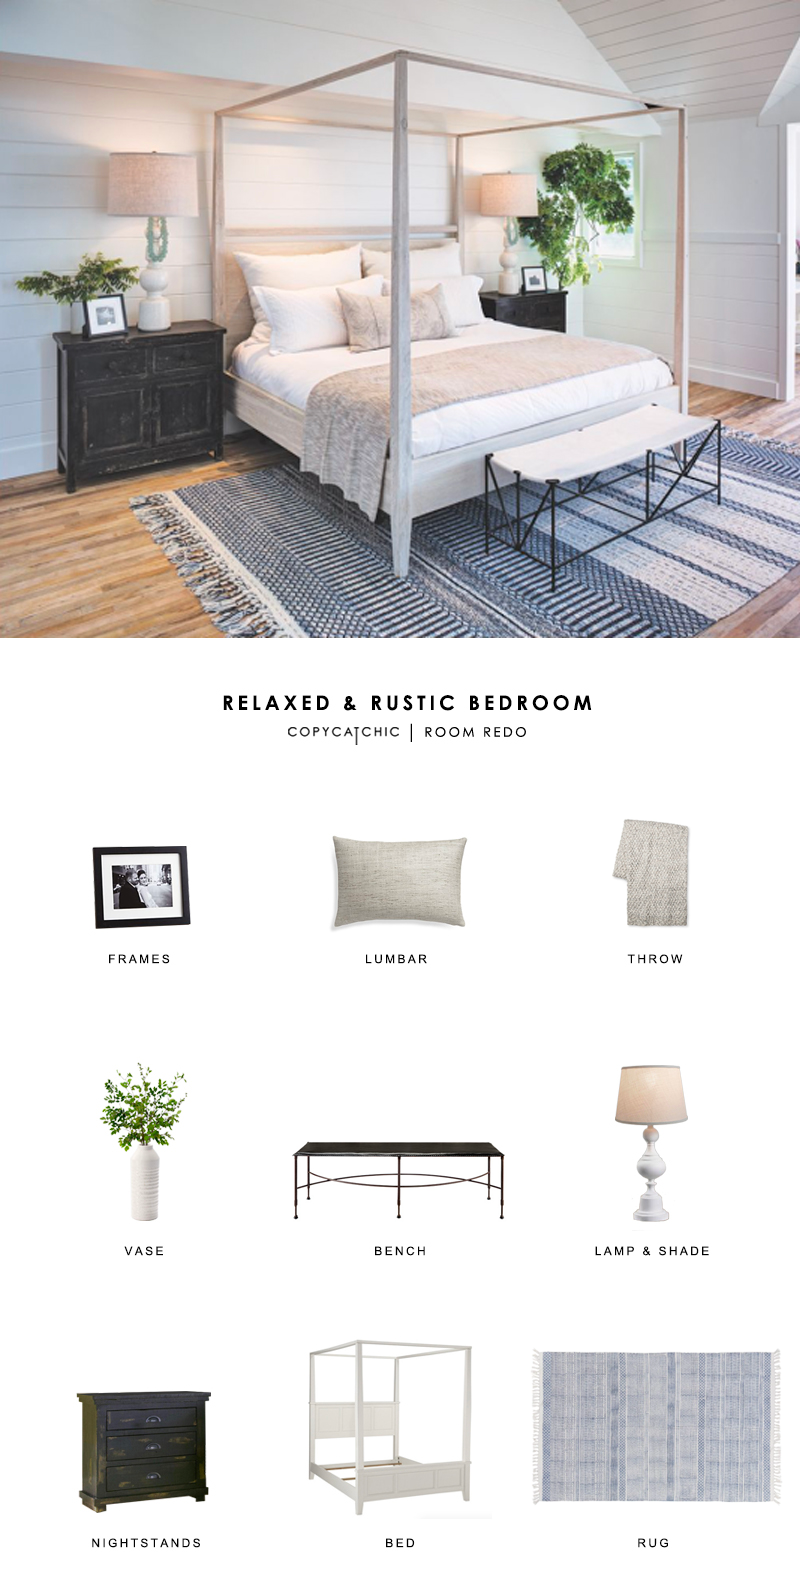 A coastal California rustic bedroom featured in Luxe gets recreated for less by copycatchic luxe living for less budget home decor & design room redos